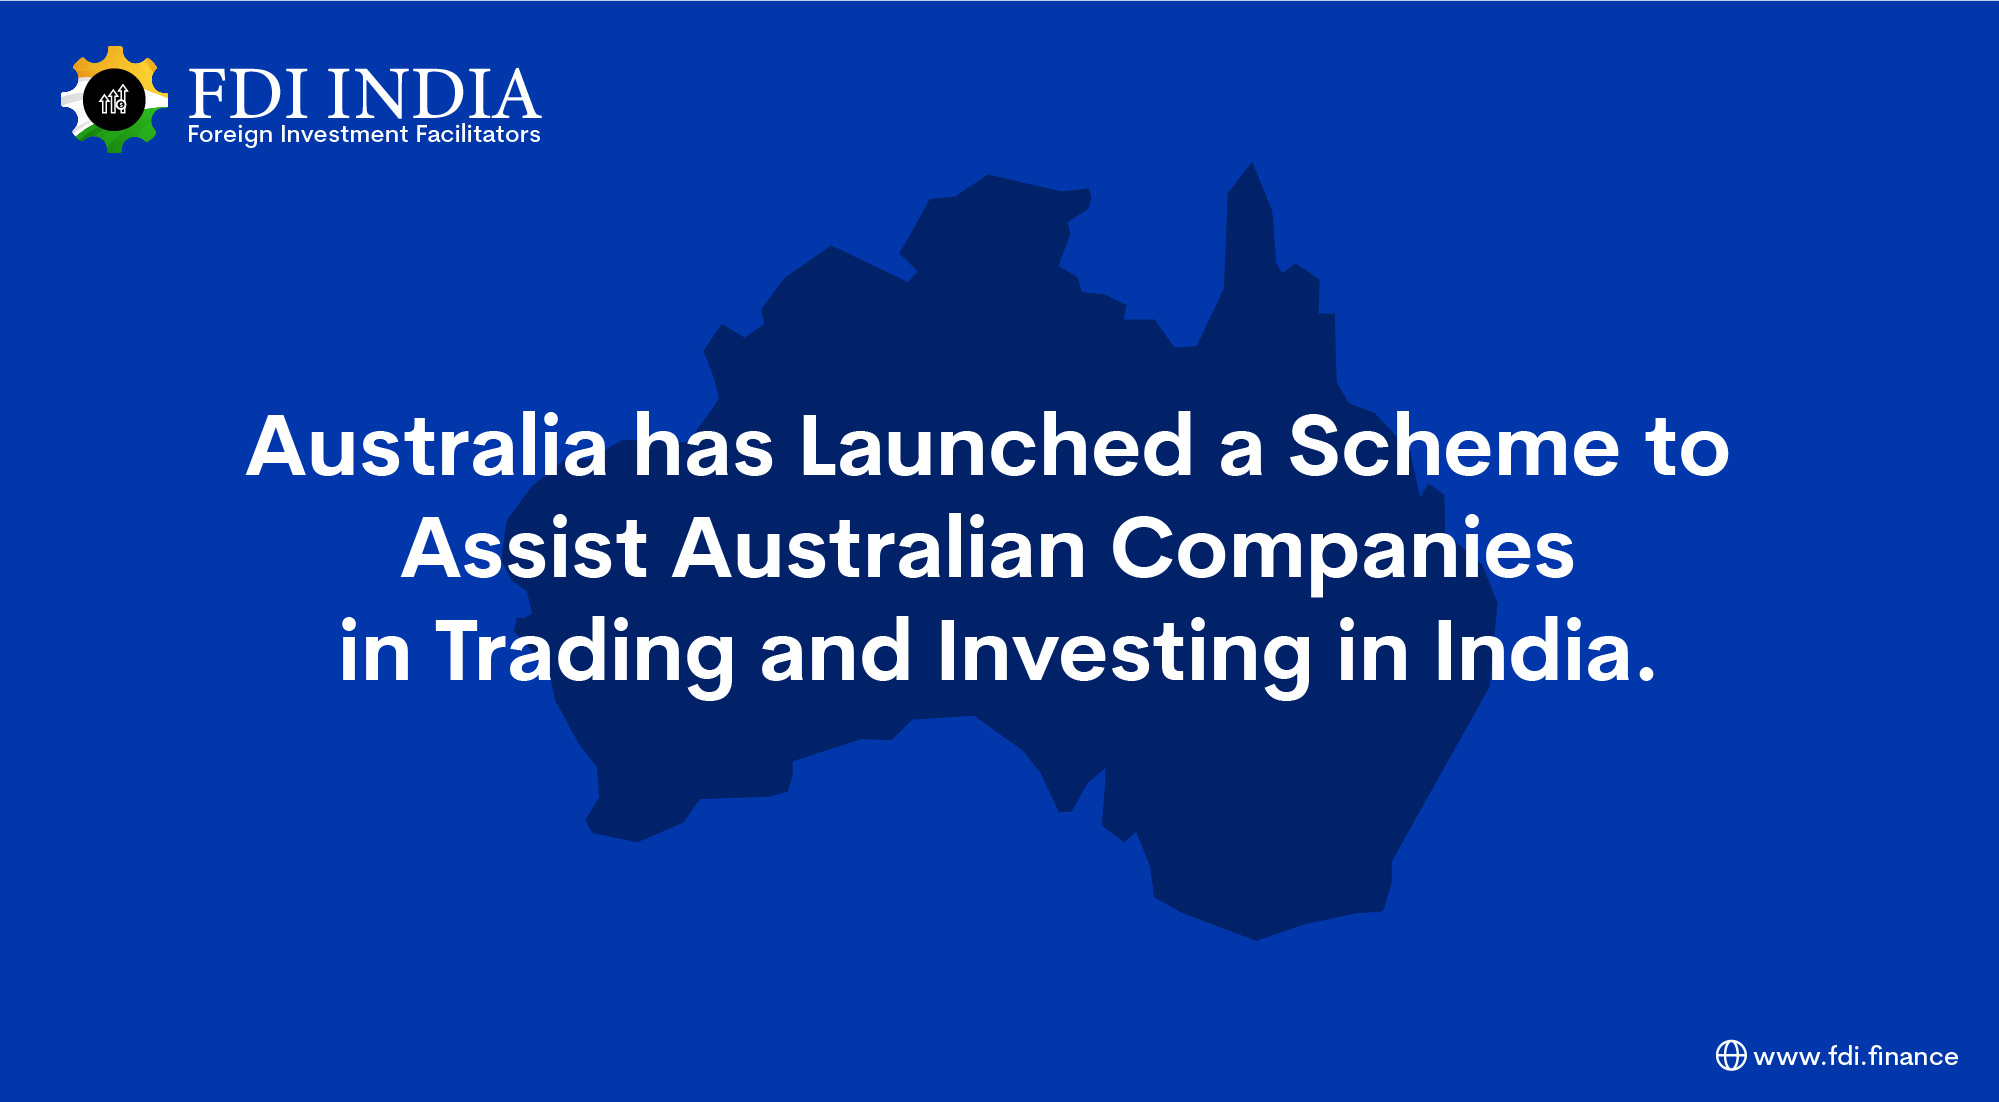 Australia Has Launched a Scheme to Assist Australian Companies in Trading and Investing in India